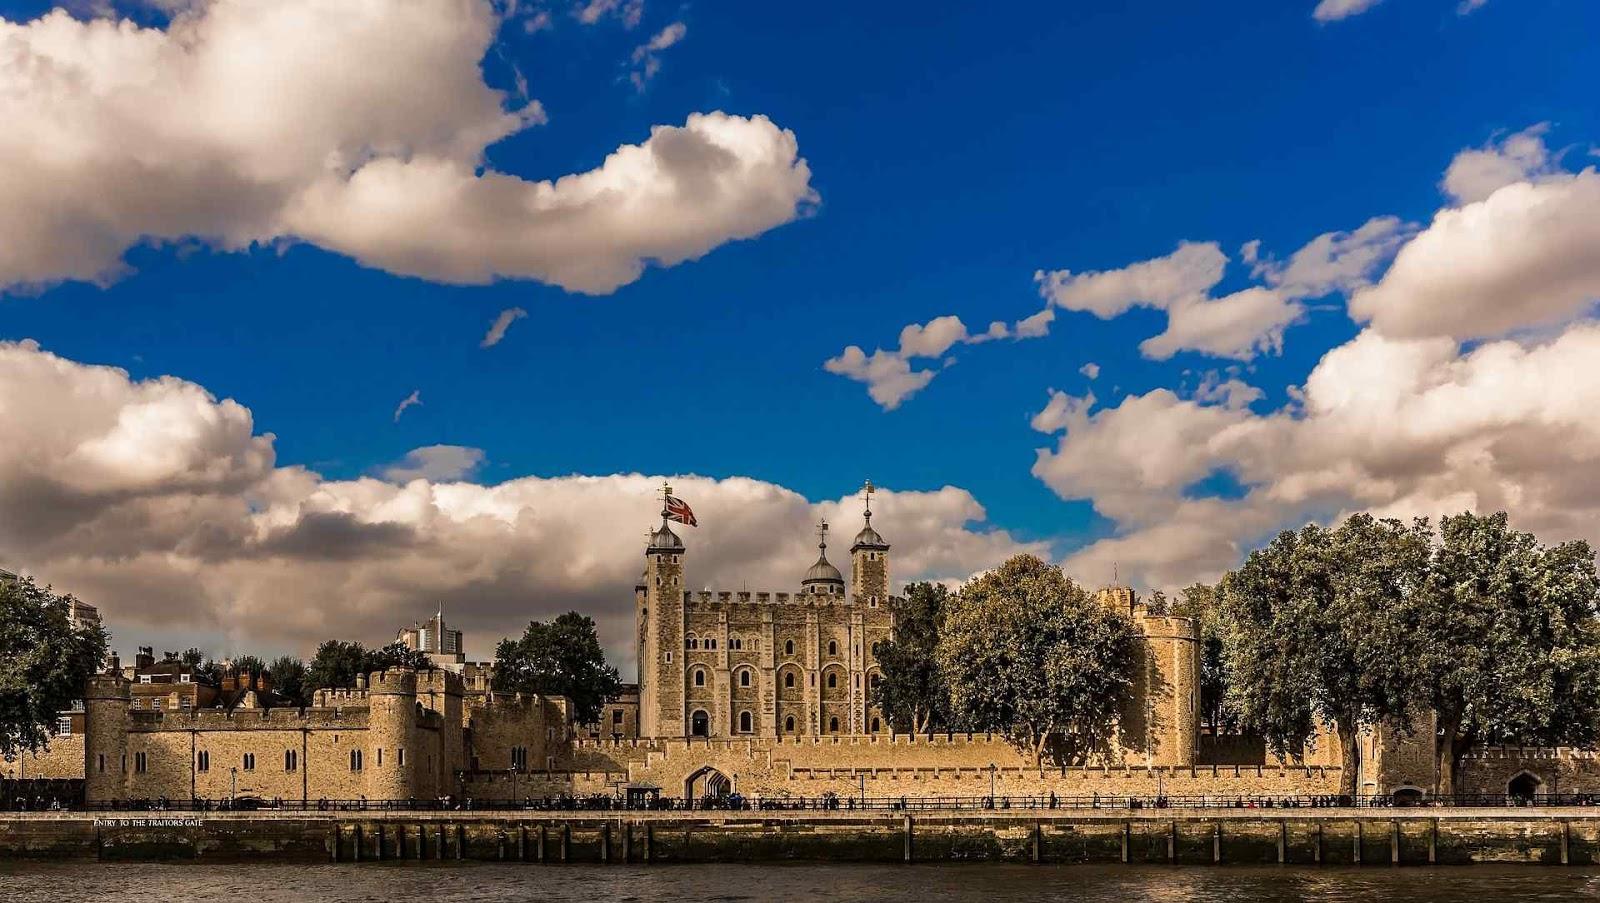 Best Things You Can't-Miss To Do In London - Tower of London